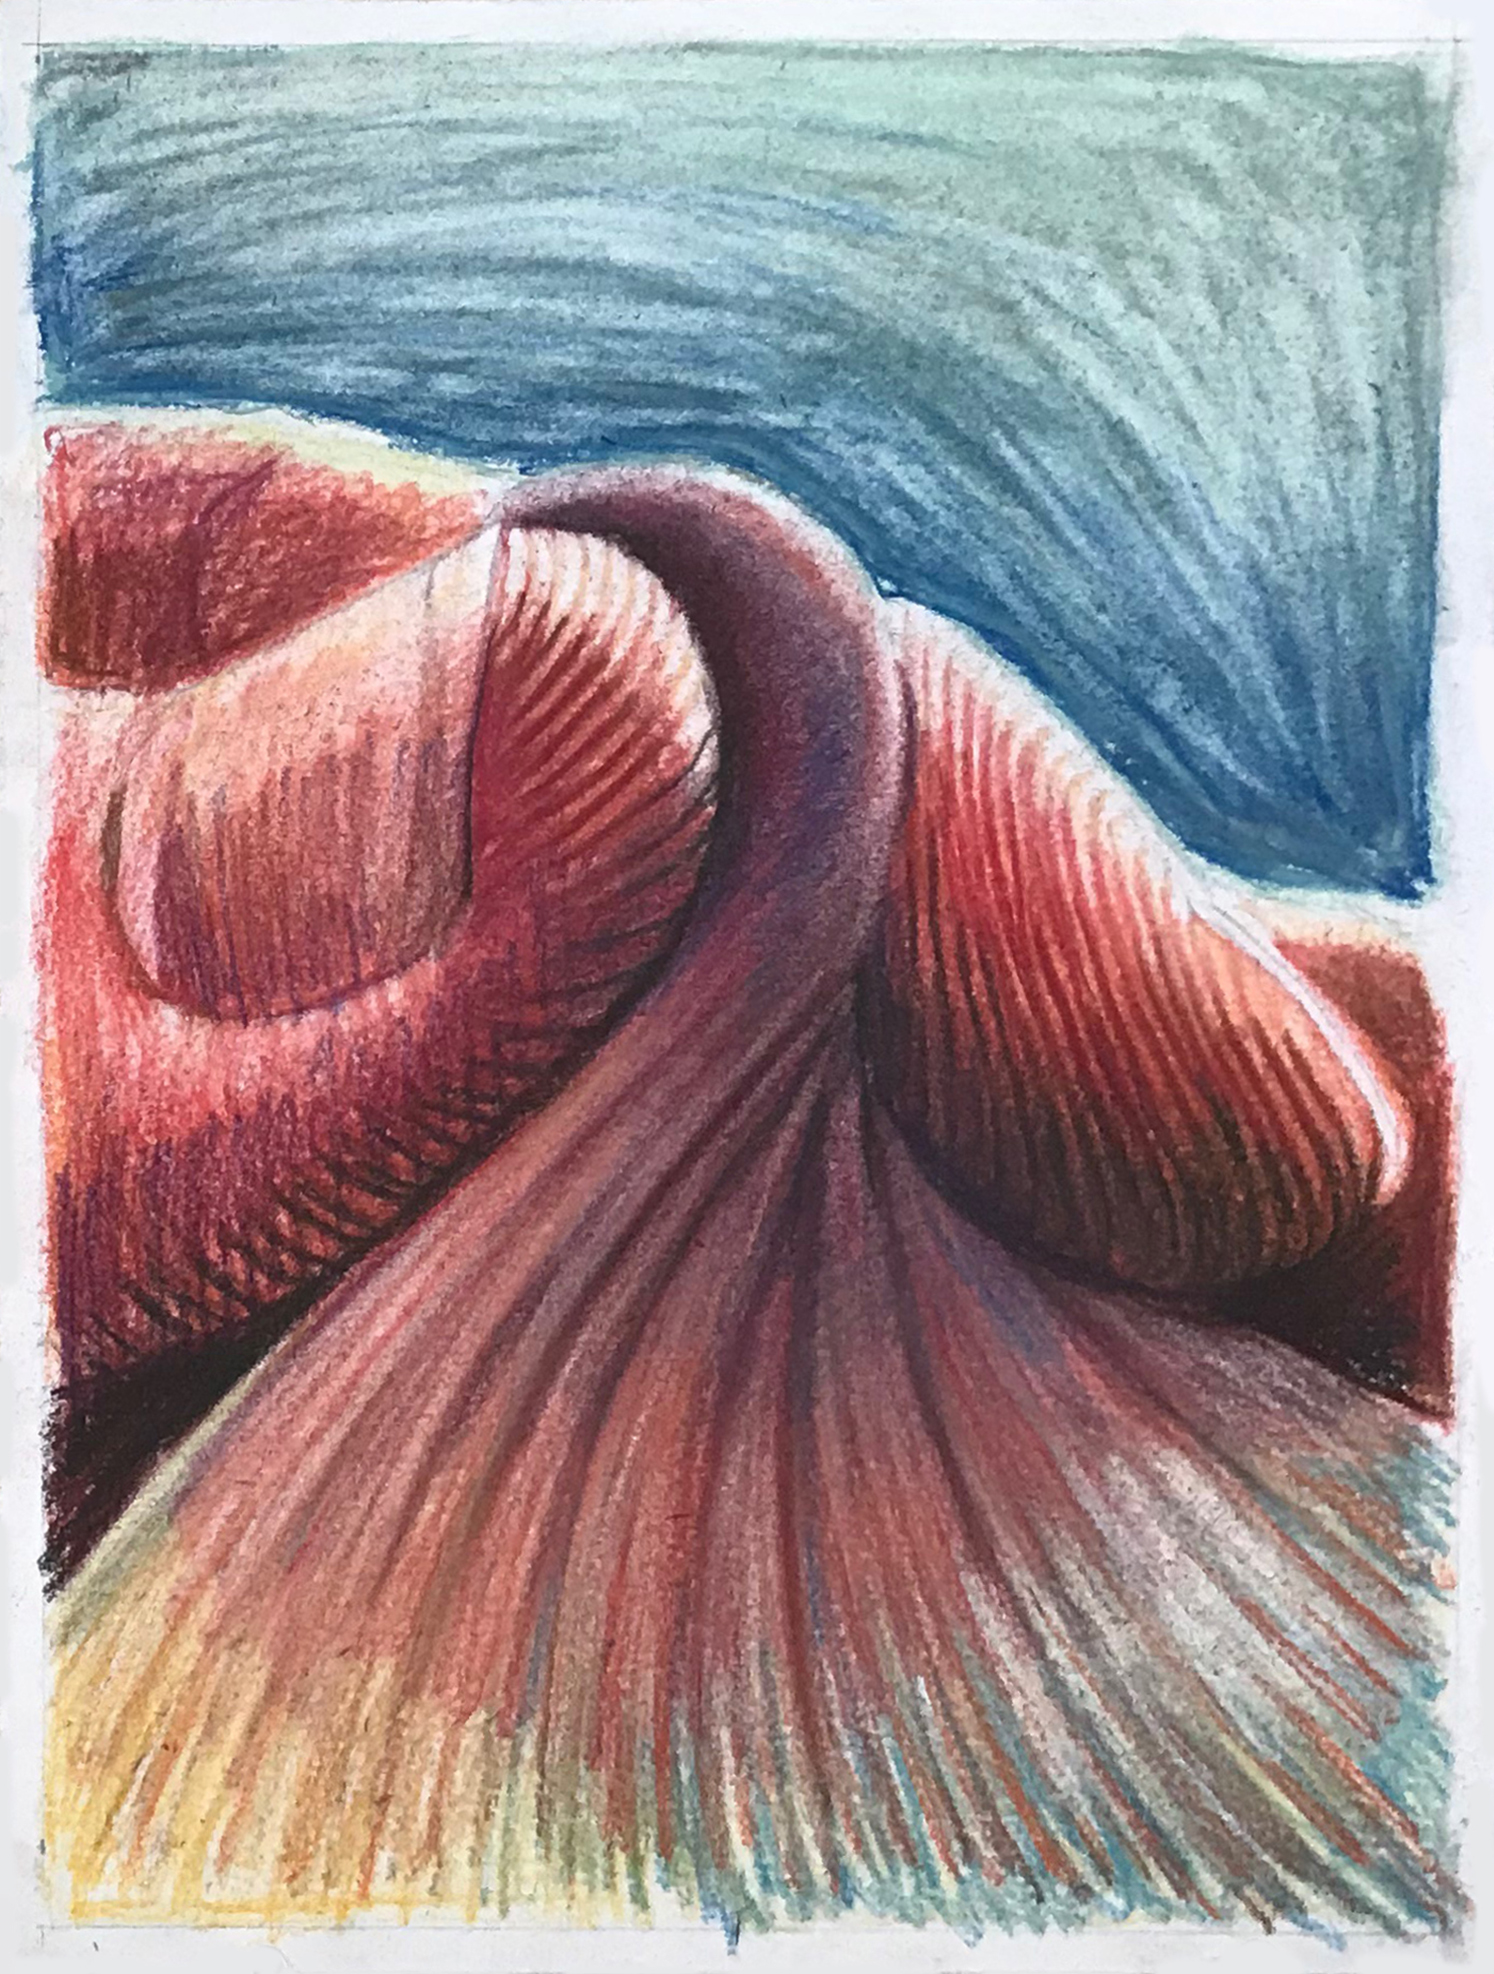 Twist   conté crayon and pastel on paper  9 X 12 inches  2019